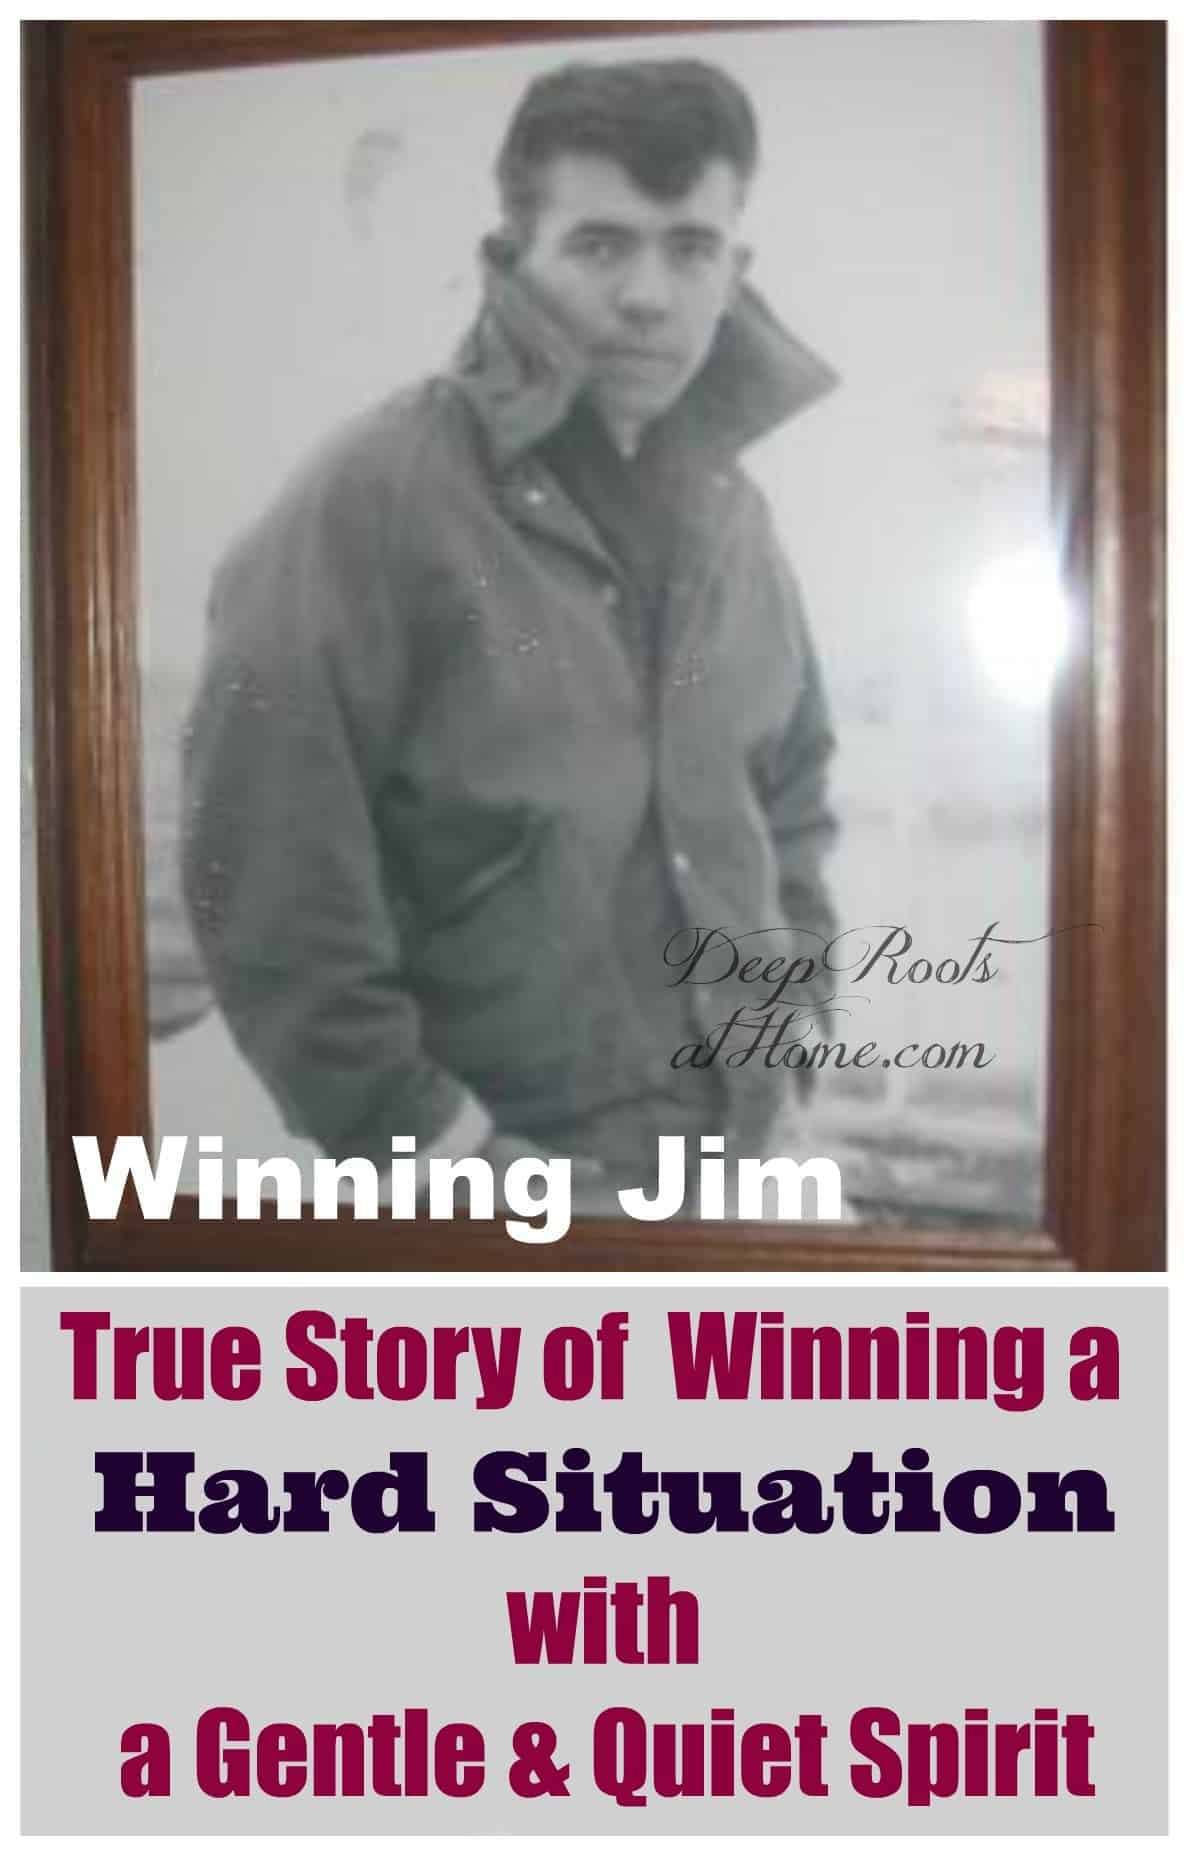 True Story of Winning a Hard Situation by a Gentle & Quiet Spirit. Jim Hultquist as rebellious young man before he went to prison.